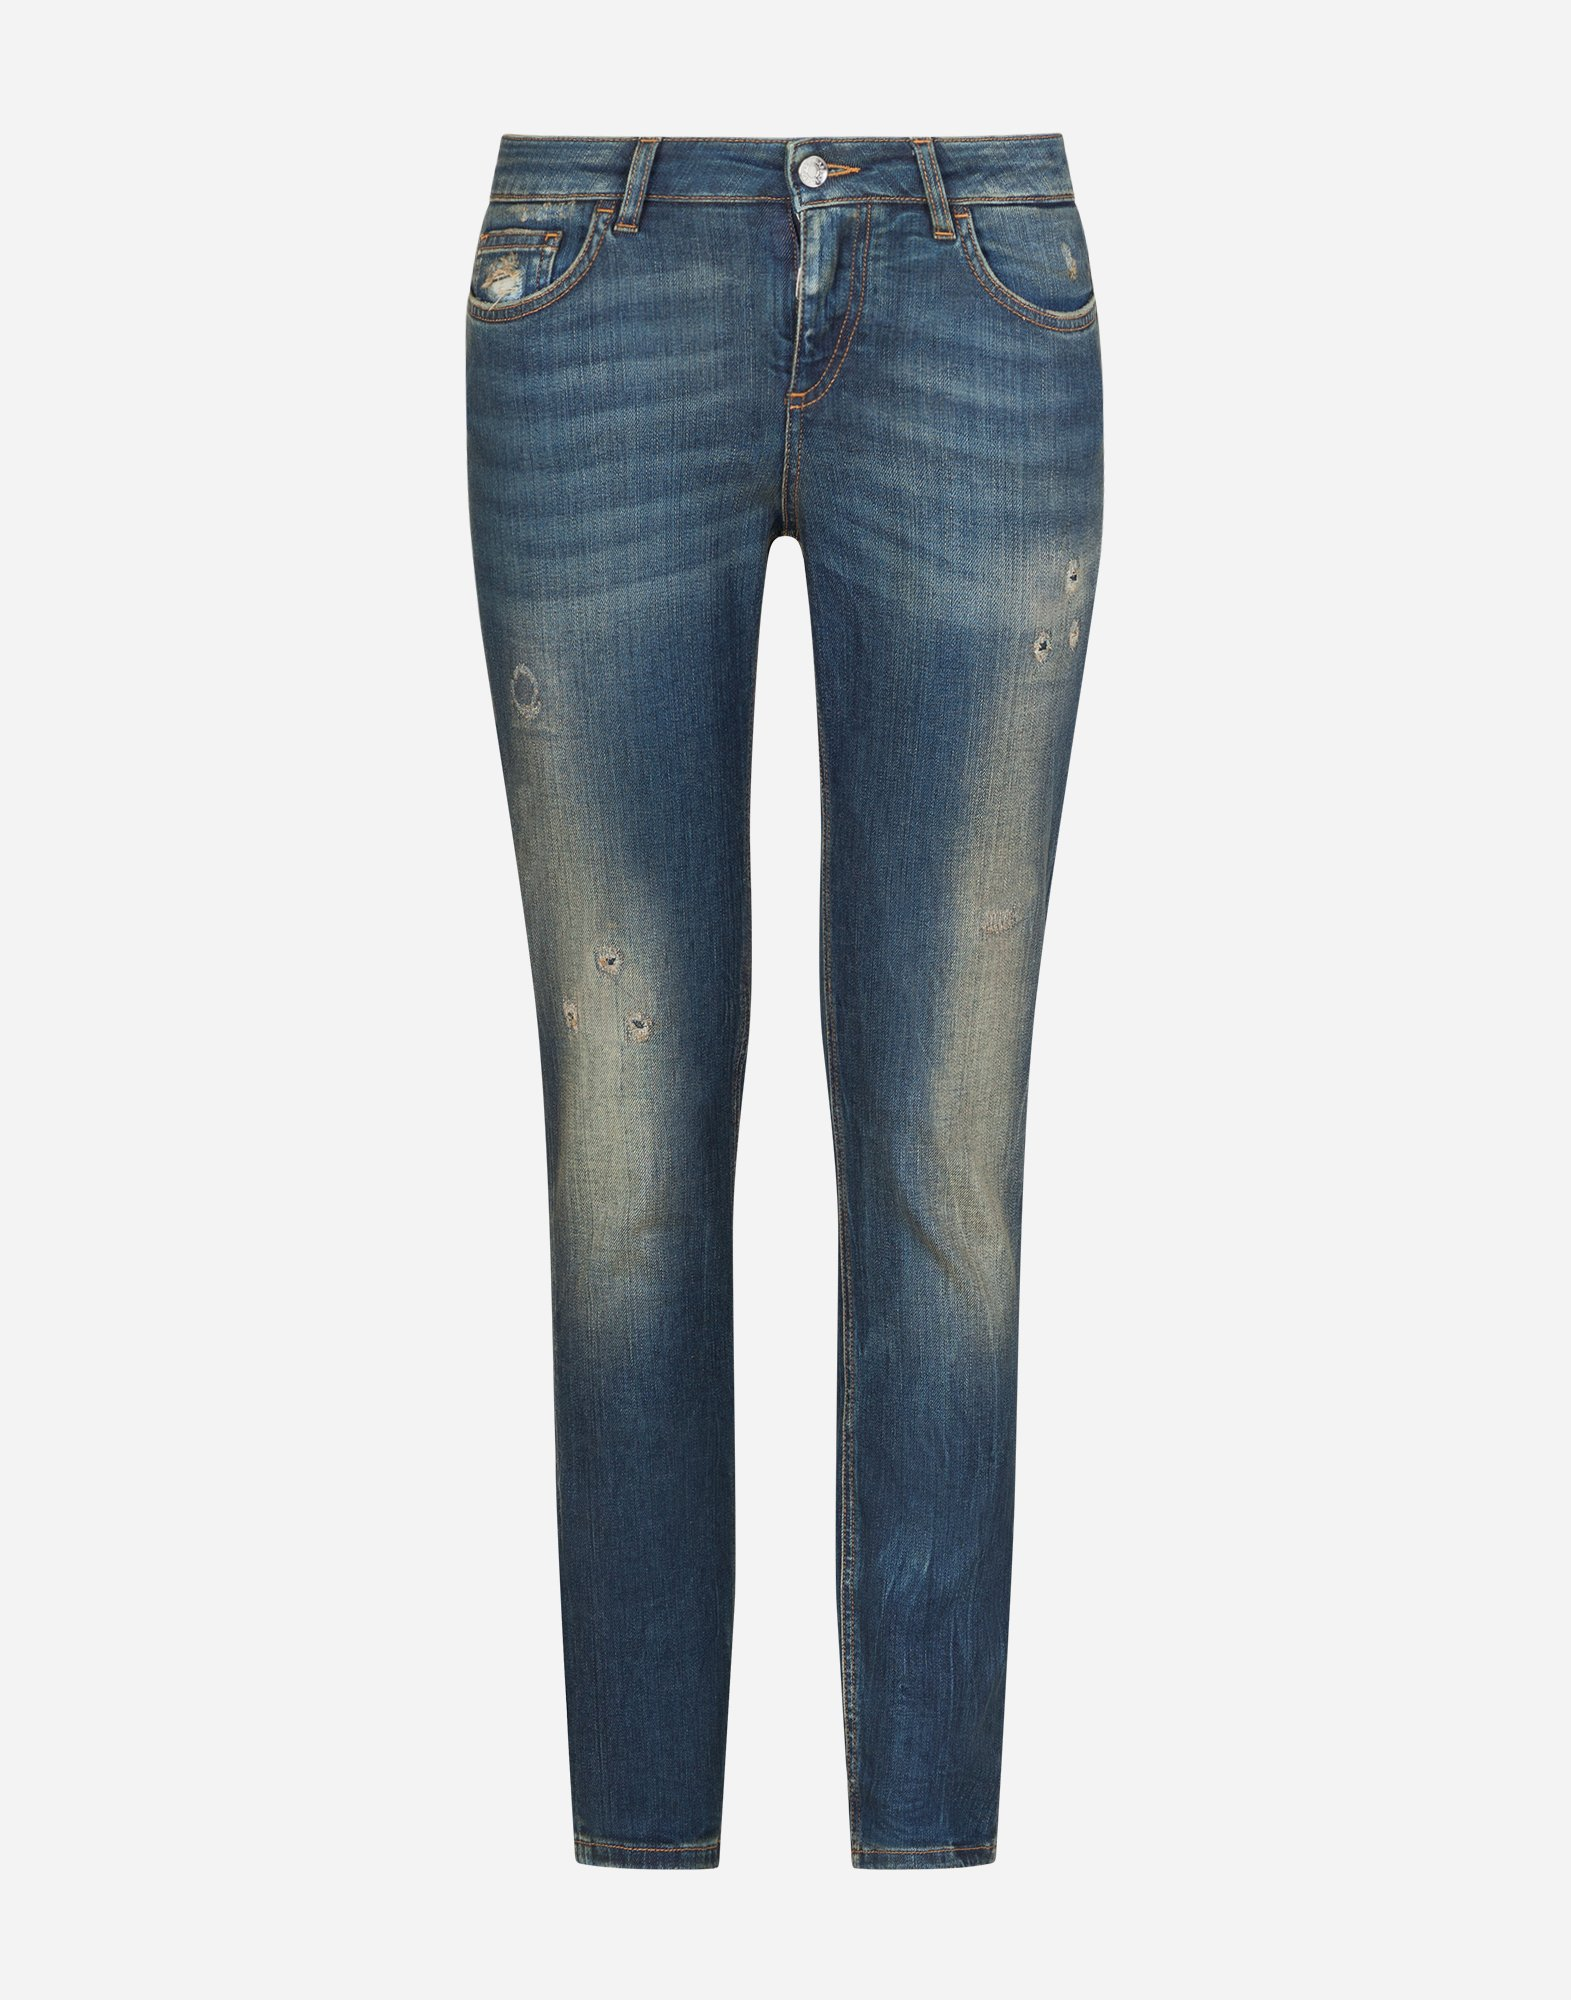 DENIM STRETCH FIT PRETTY JEANS